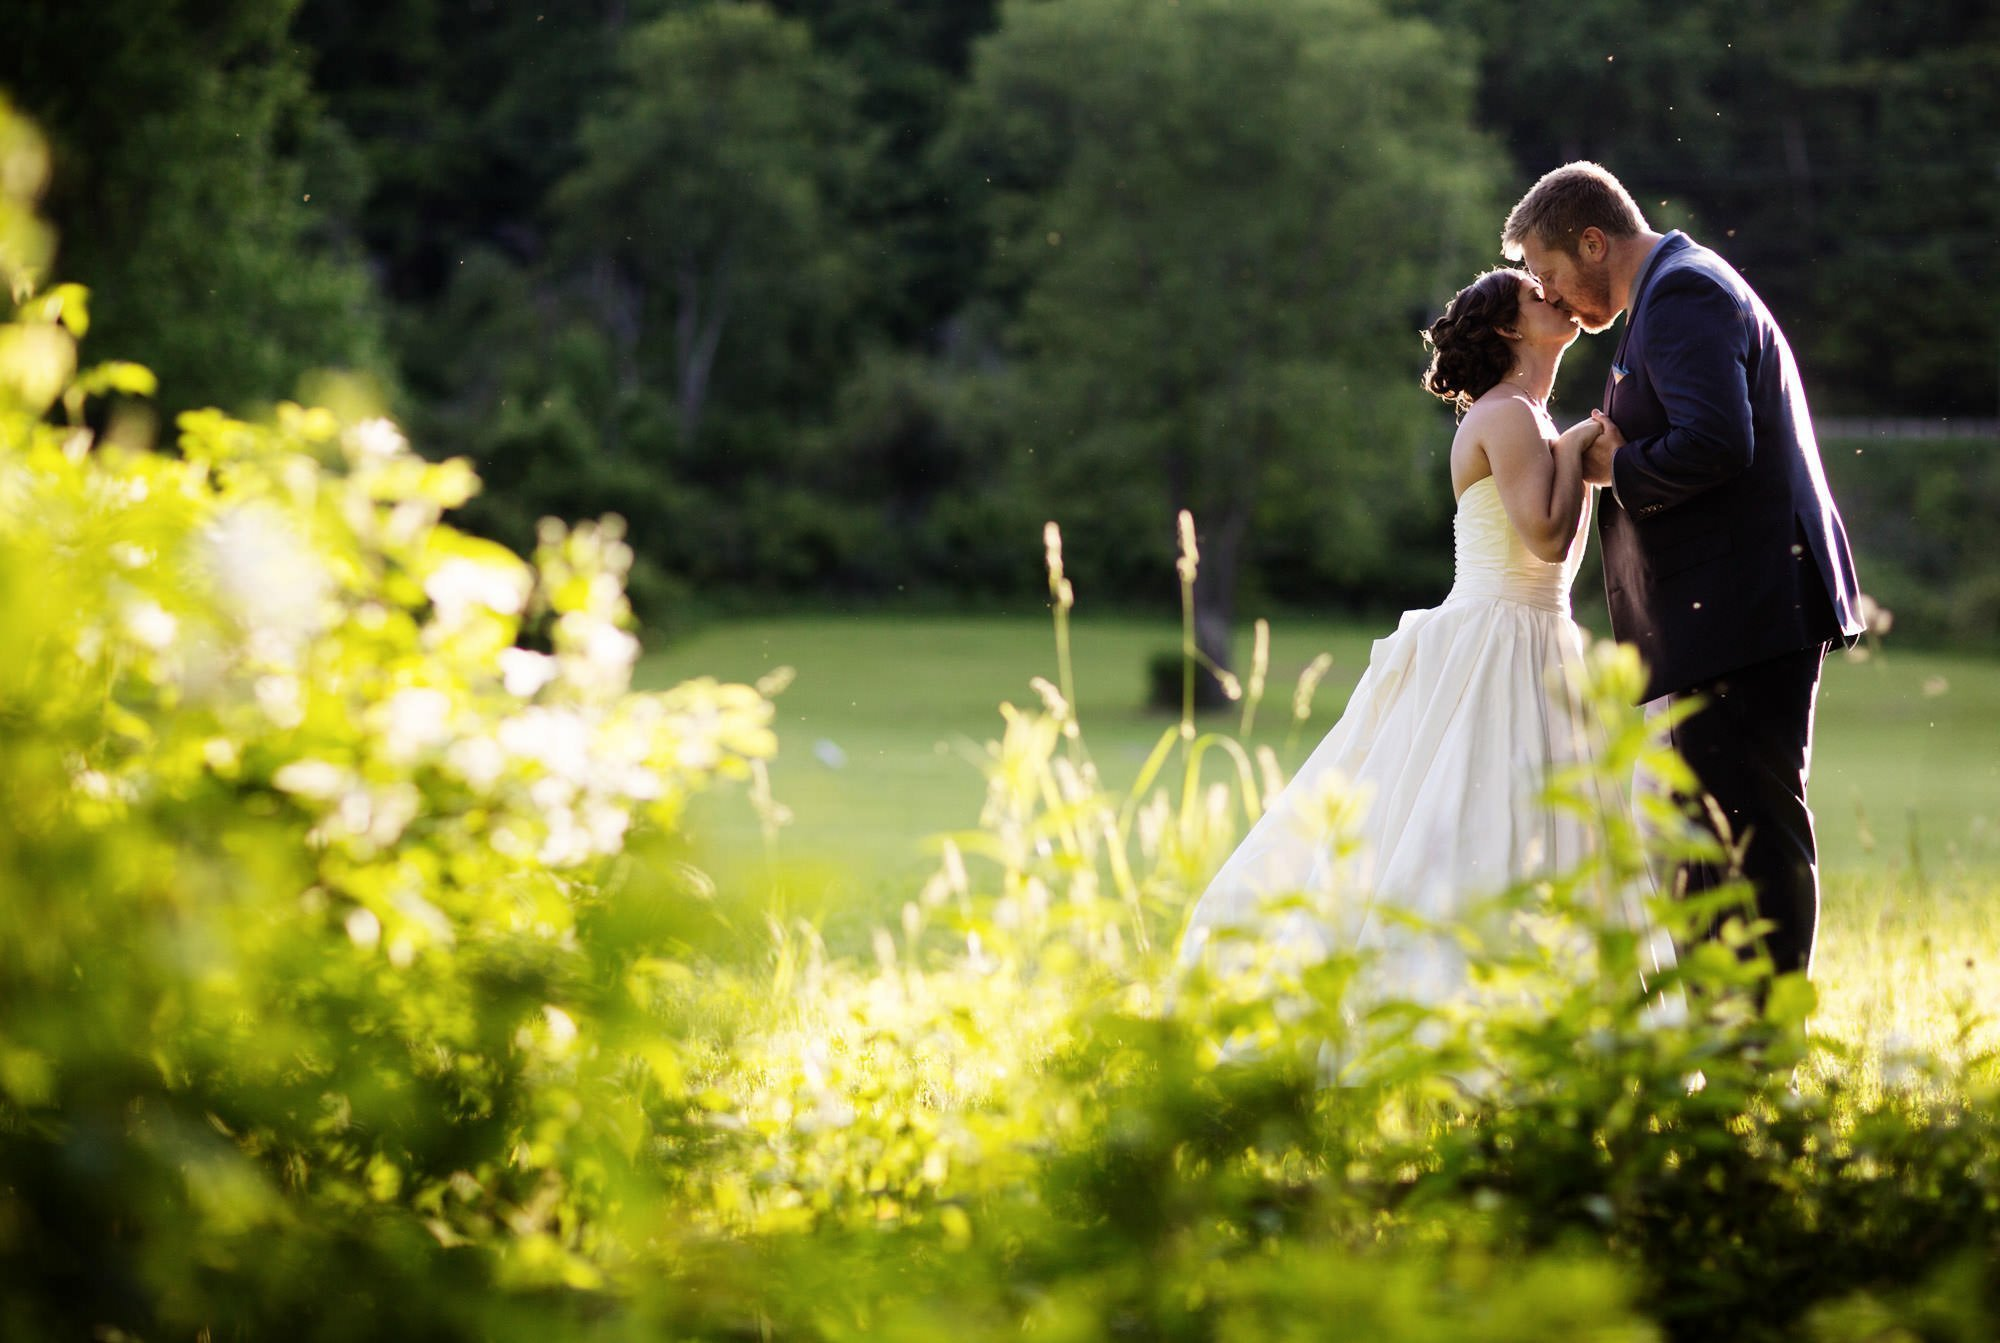 The bride and groom pose for a portrait during their Chanteclaire Farm Wedding.